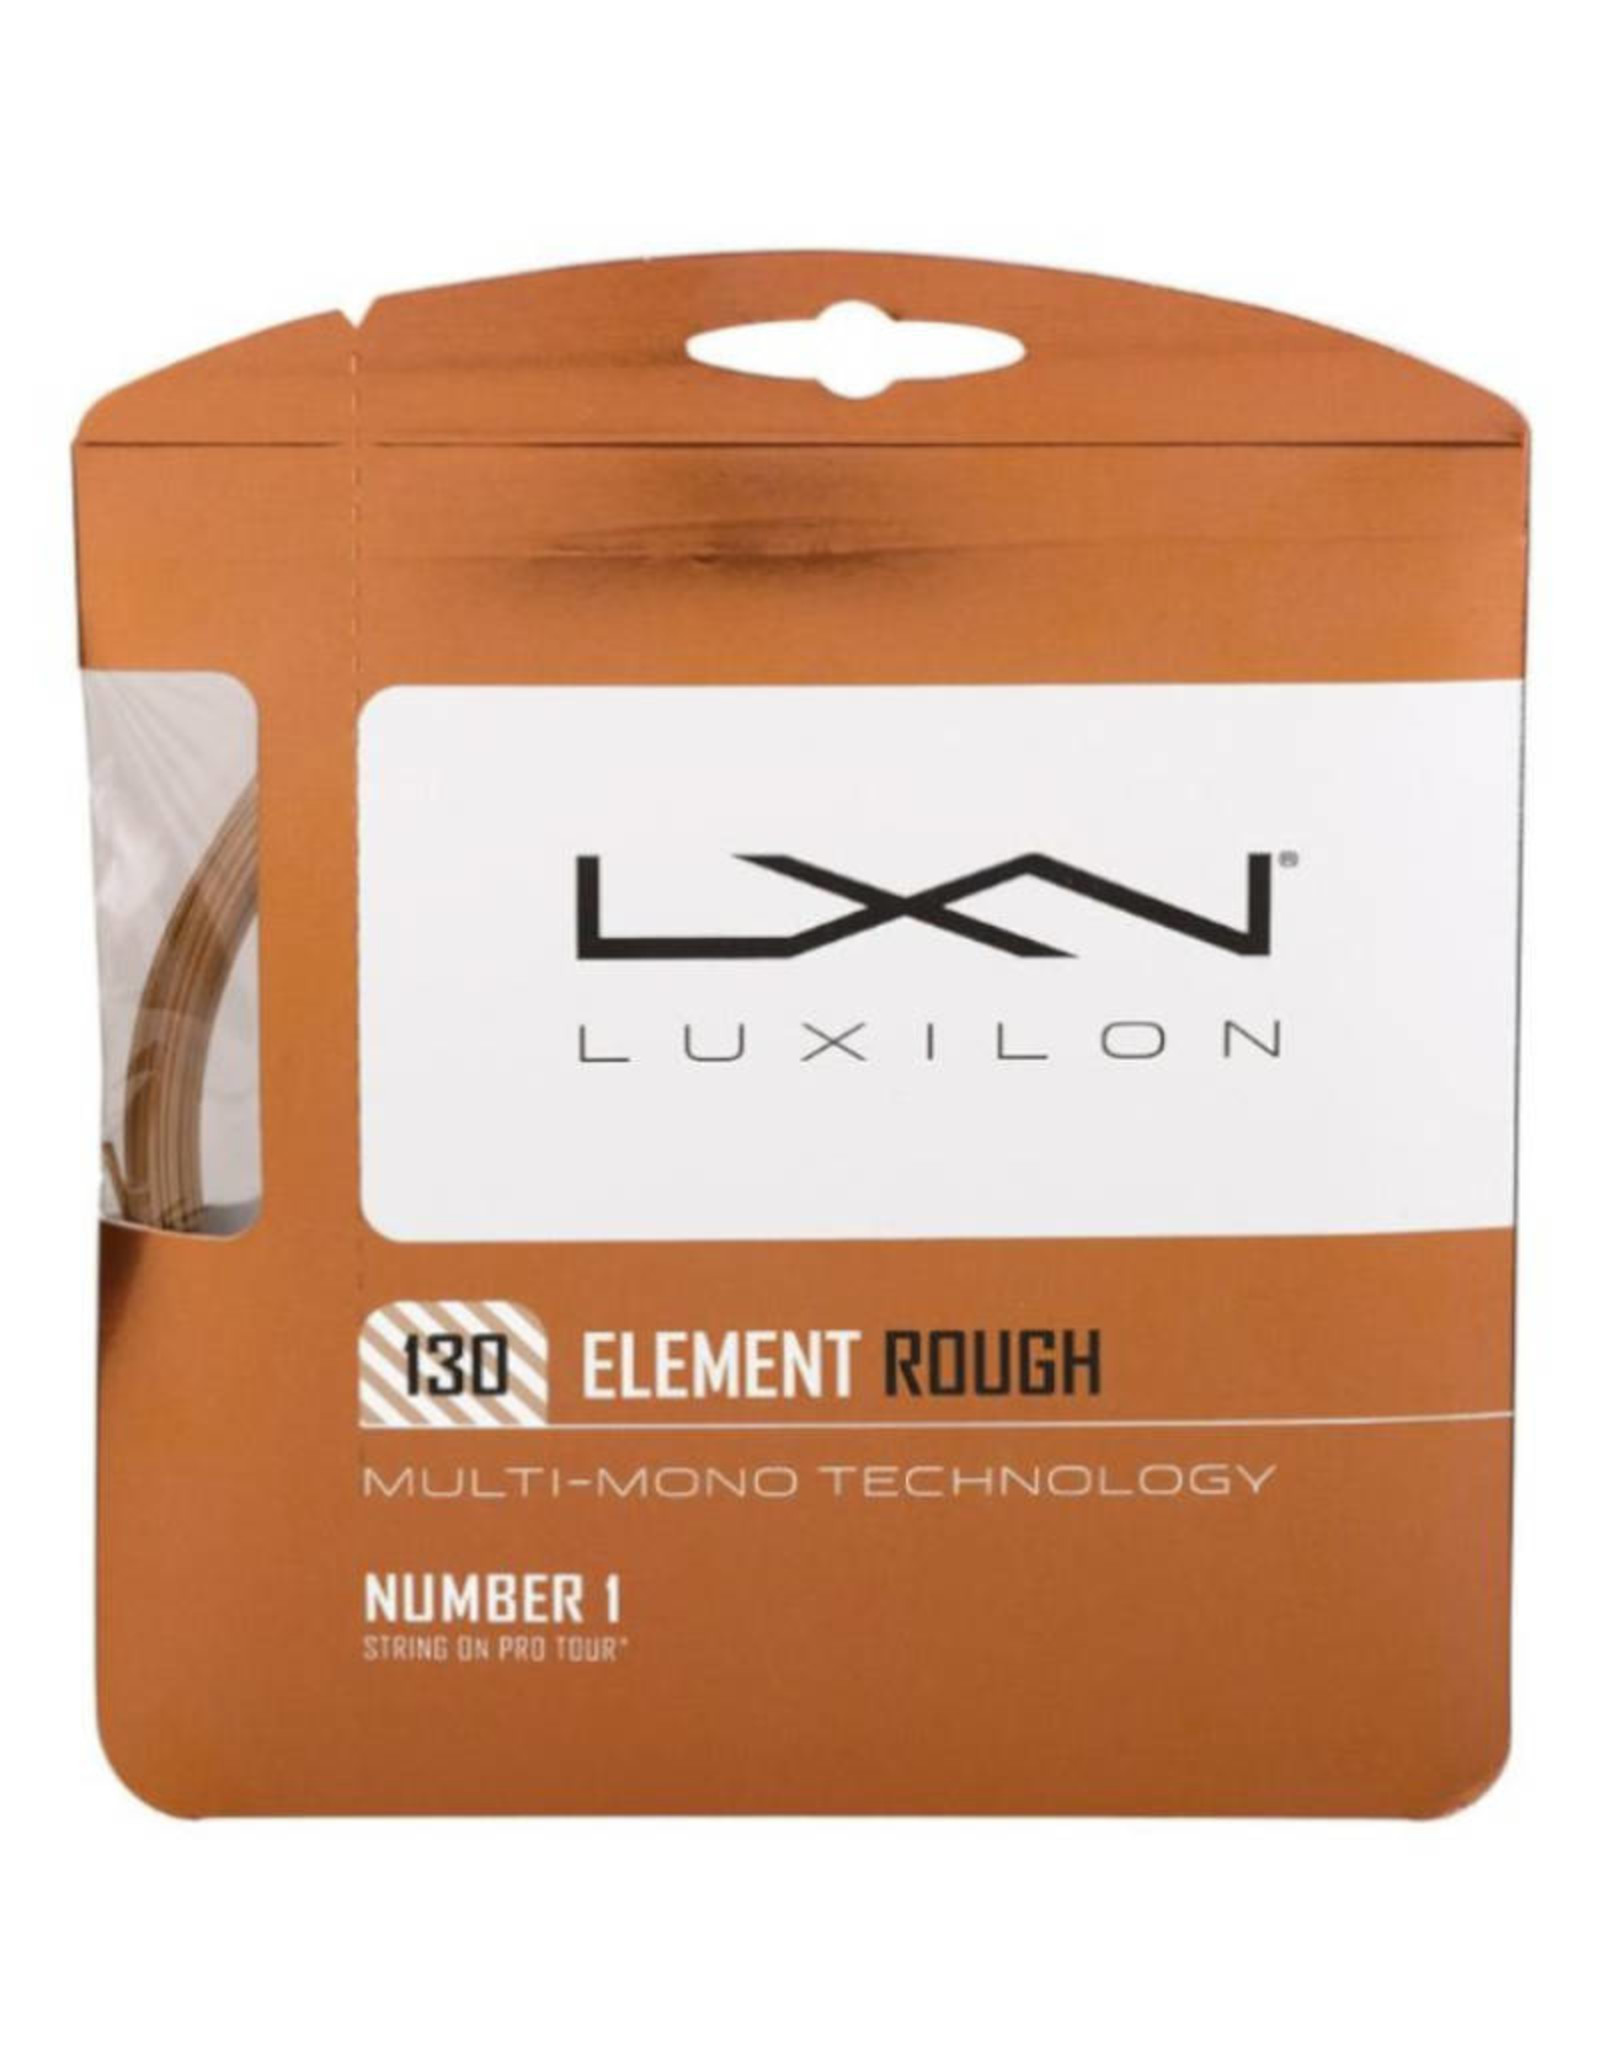 LUXILON ELEMENT ROUGH 130 FULL SET